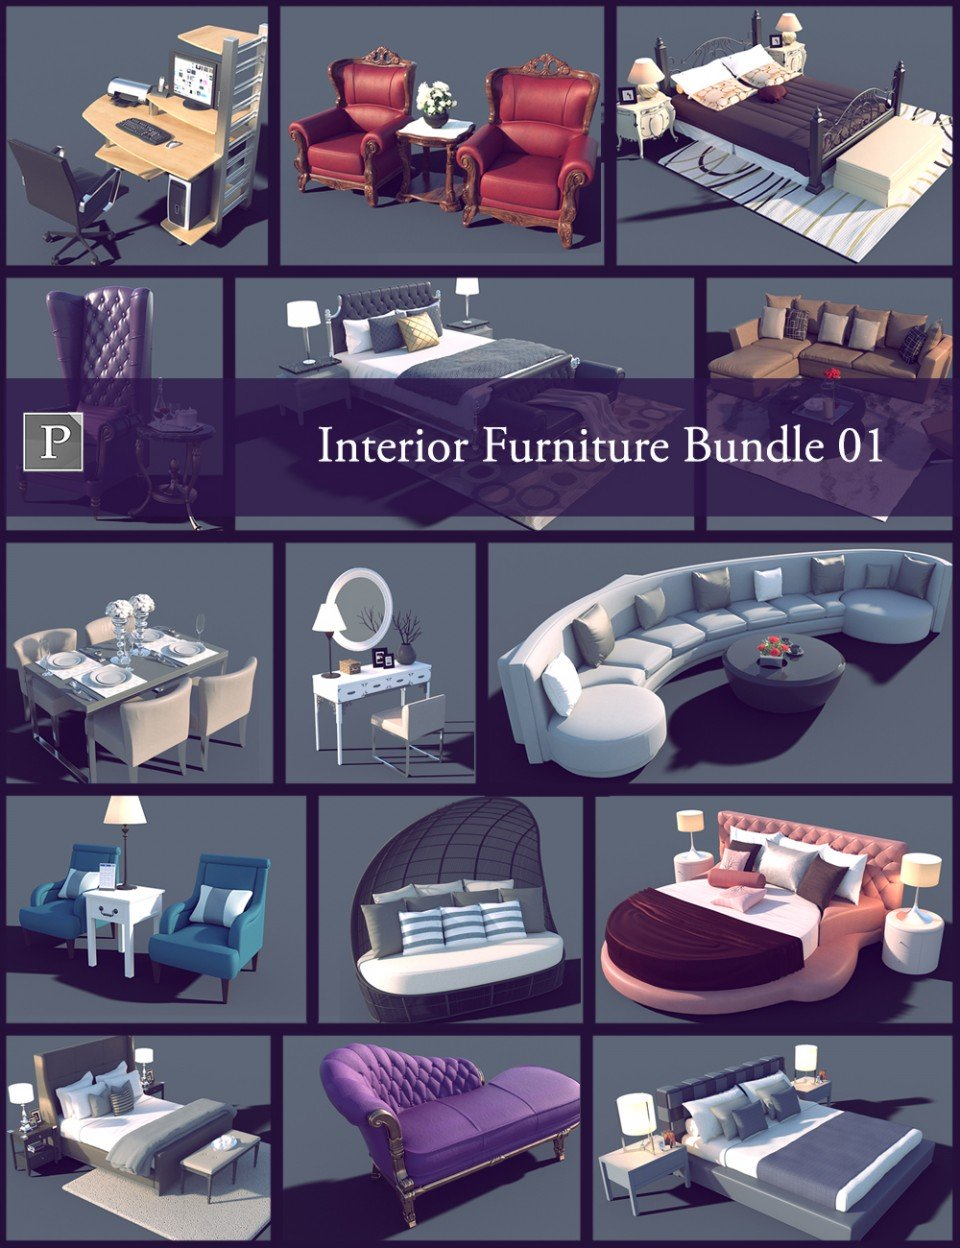 Interior Furniture Bundle 01_DAZ3D下载站